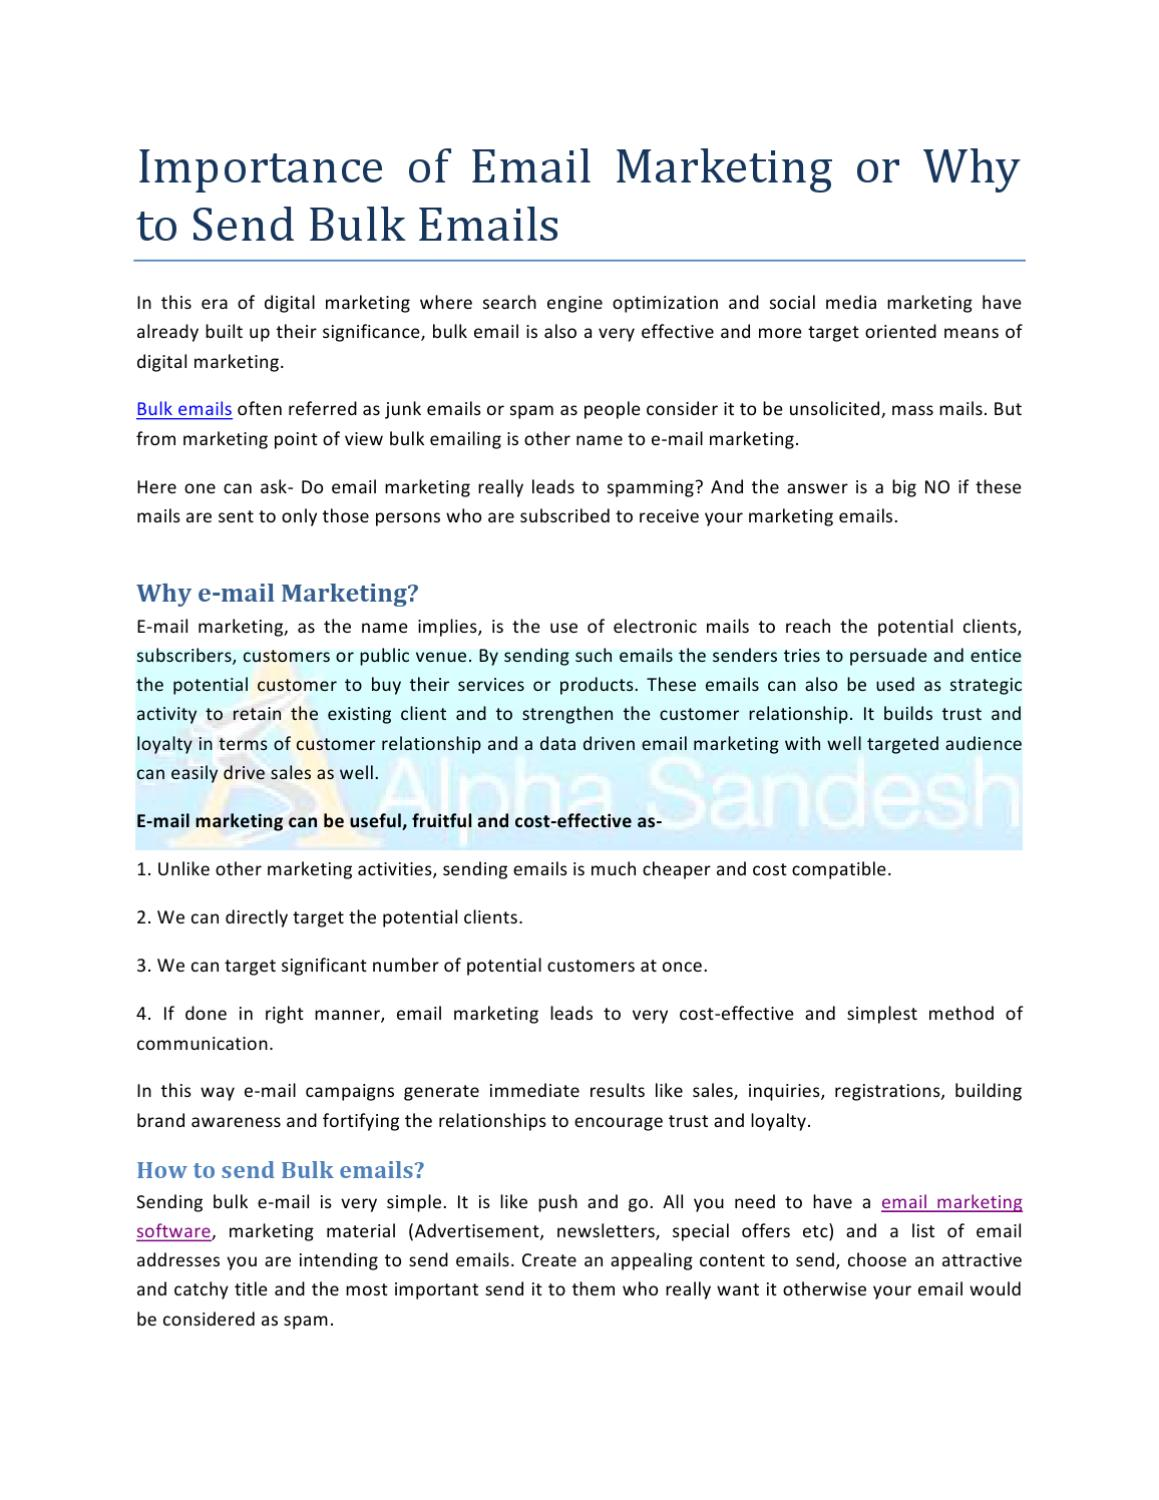 Importance of Email Marketing by Alpha Sandesh - issuu